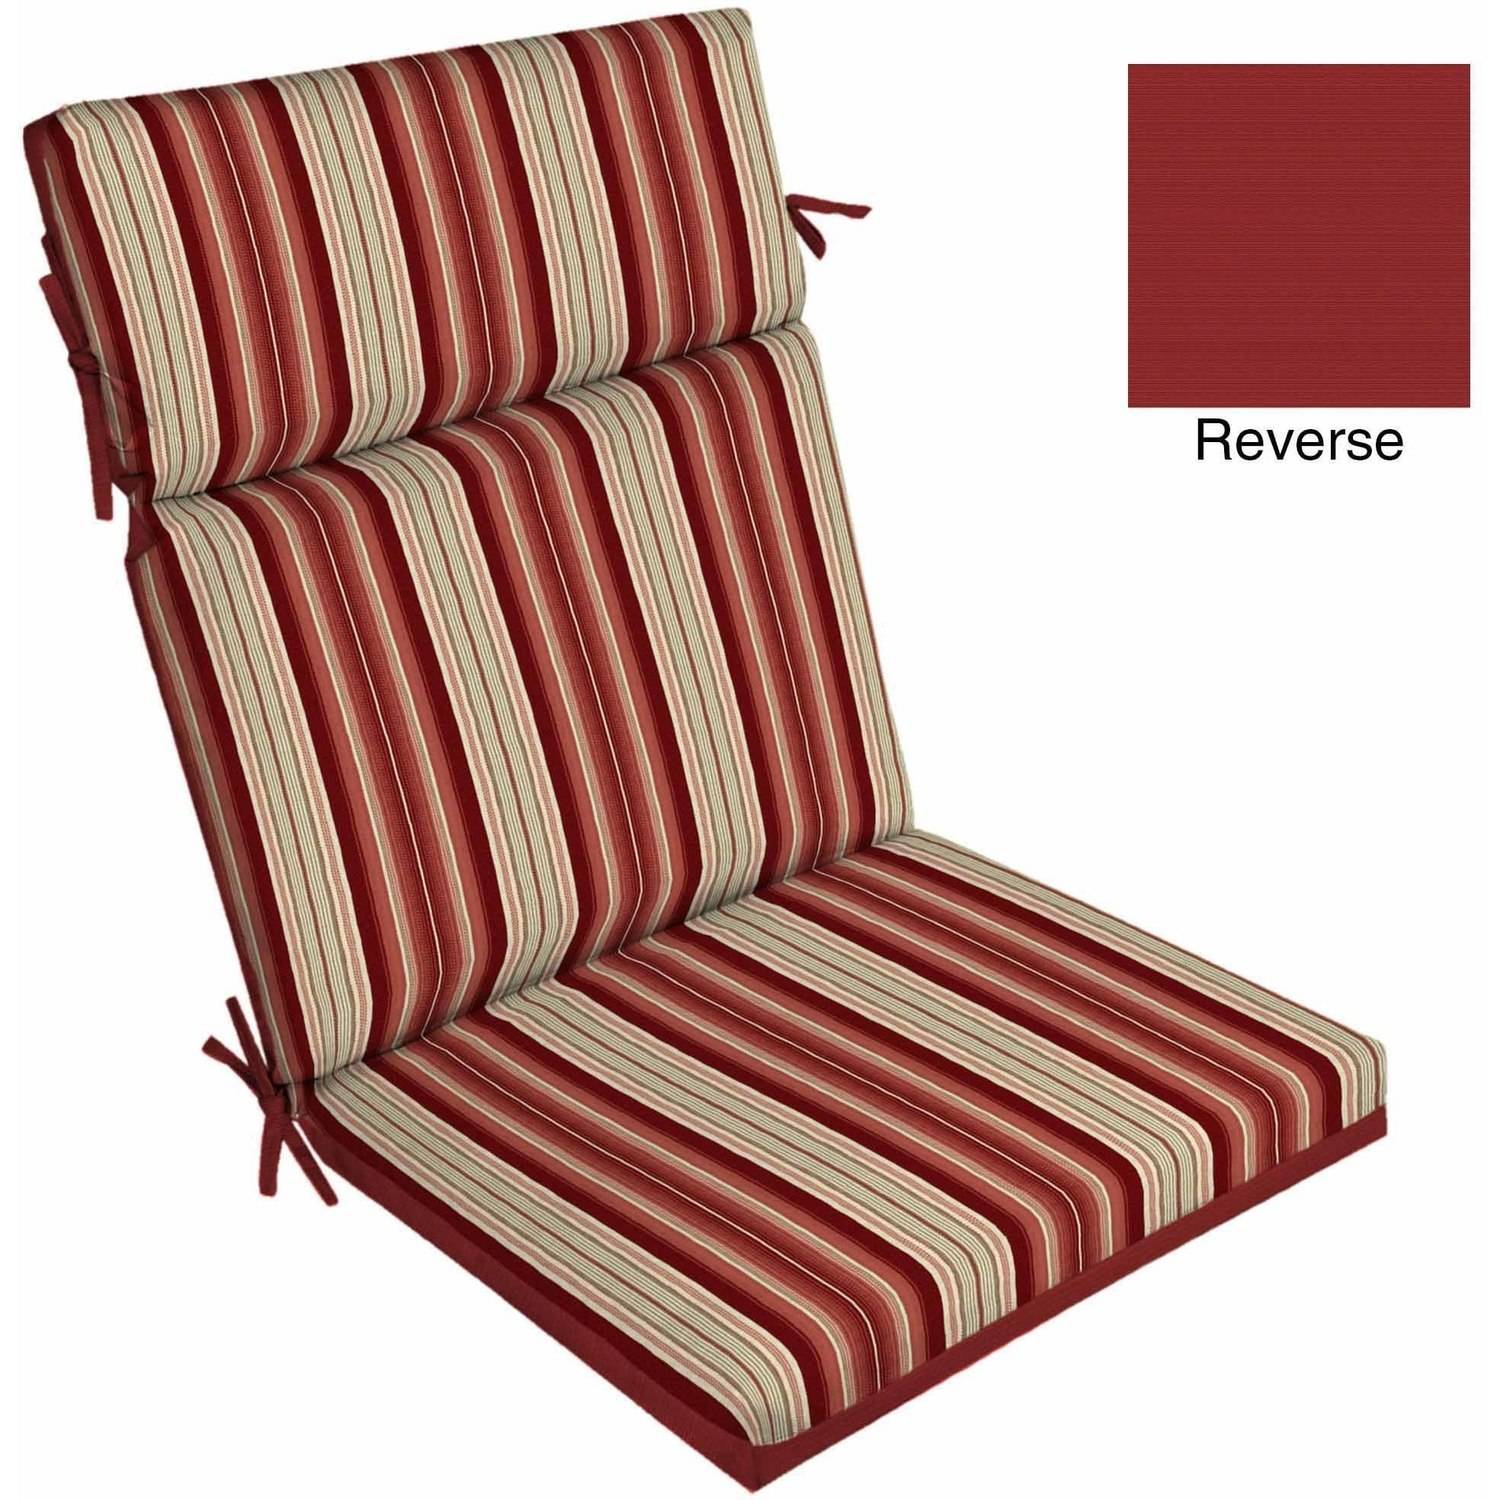 patio furniture cushions better homes and gardens outdoor patio reversible dining chair cushion GEPBNRK